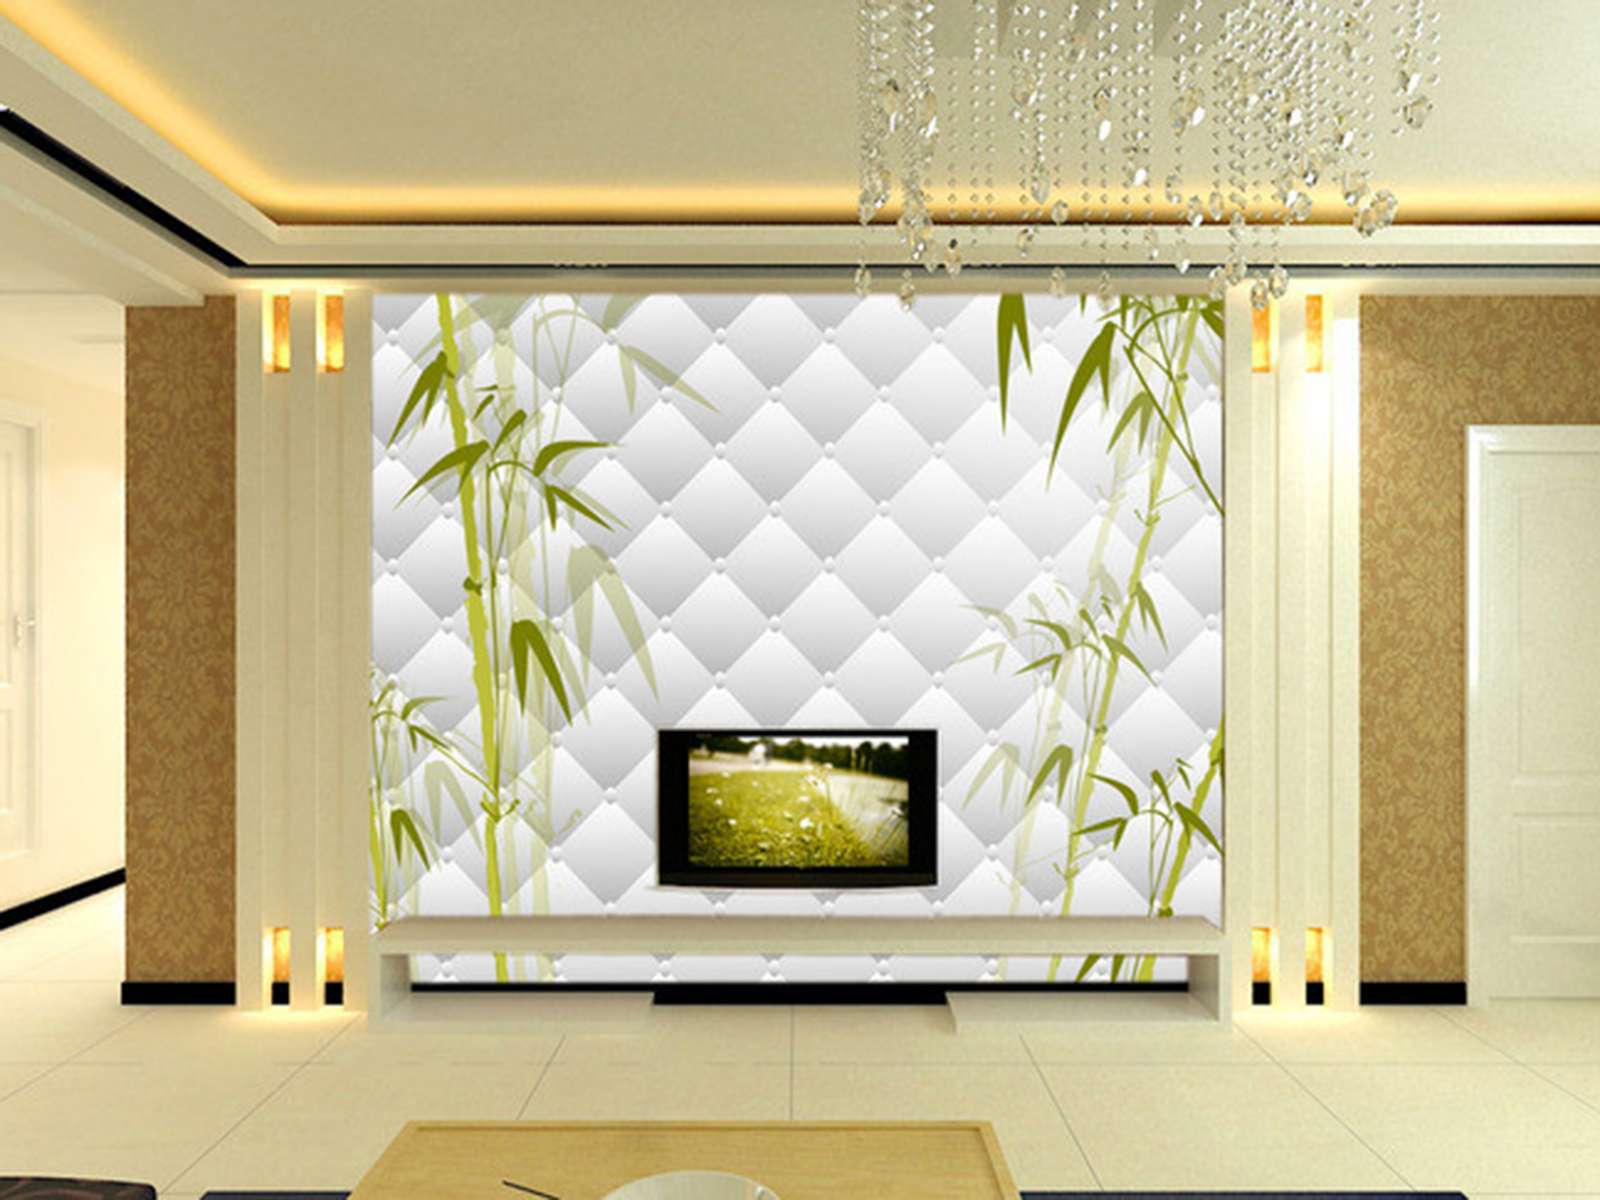 3D Grid Bamboo 4105 Wallpaper Murals Wall Print Wallpaper Mural AJ WALL UK Kyra